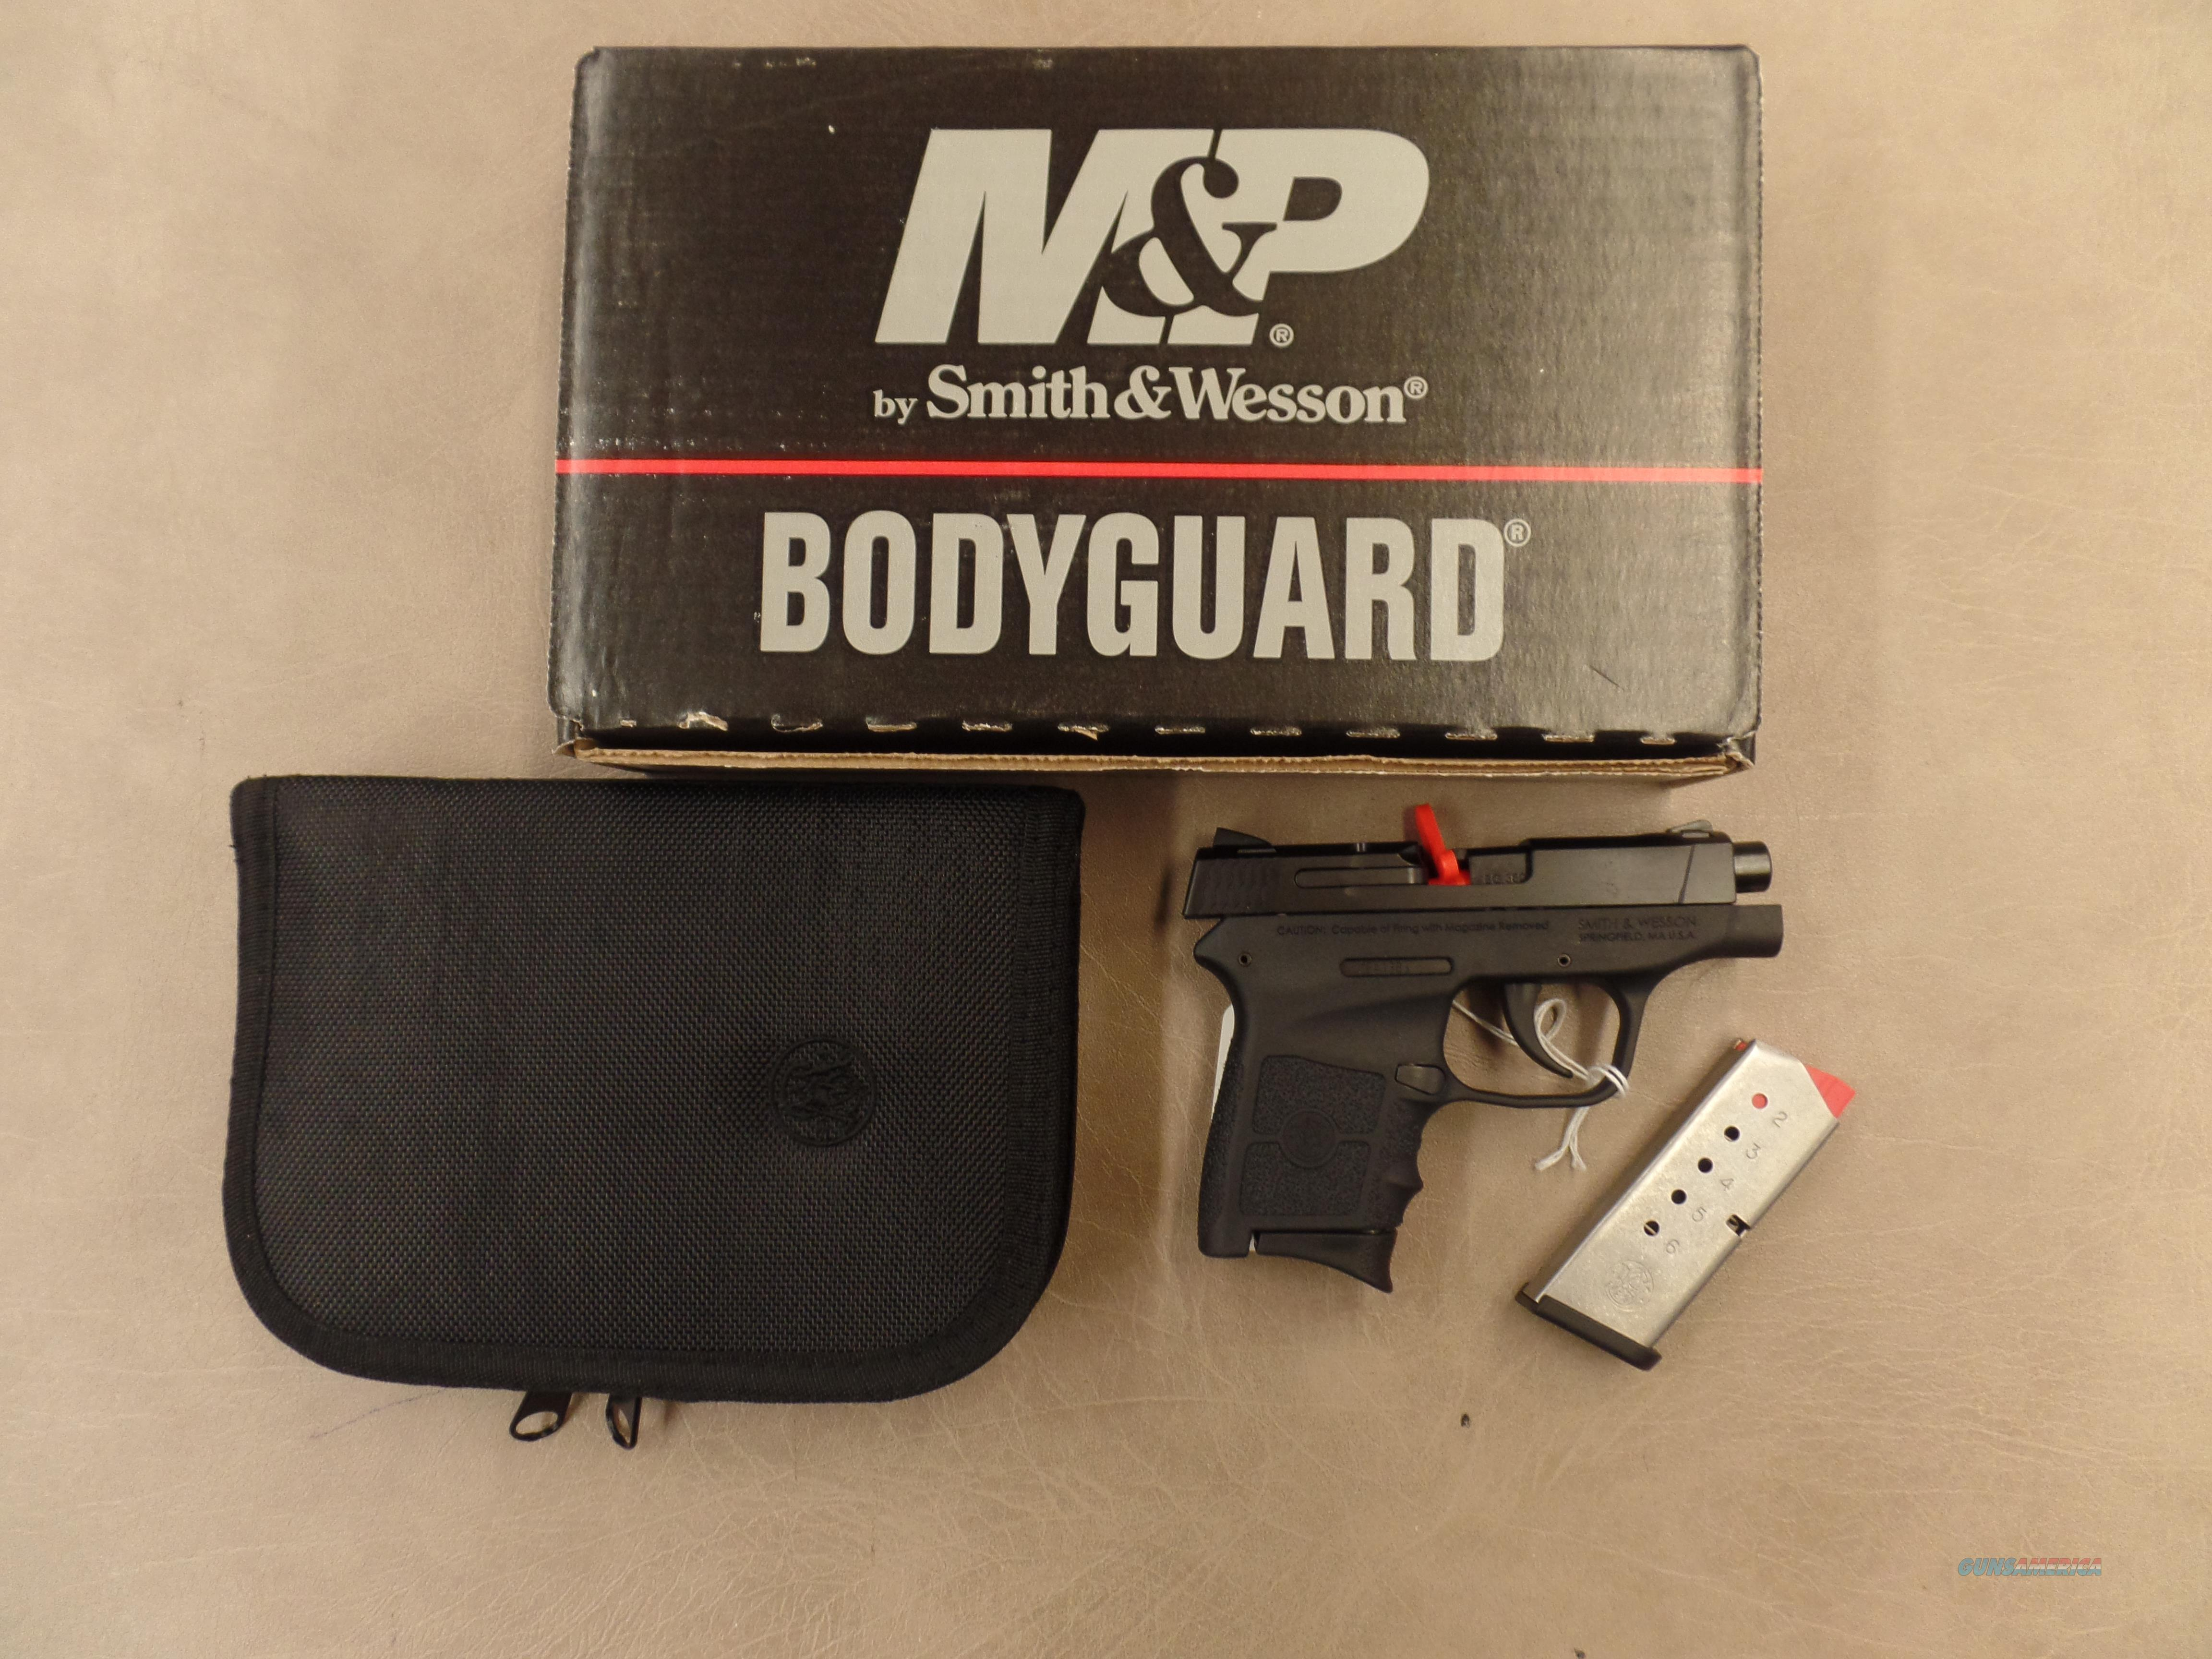 Smith & Wesson Bodyguard 380 ACP.  Guns > Pistols > Smith & Wesson Pistols - Autos > Polymer Frame